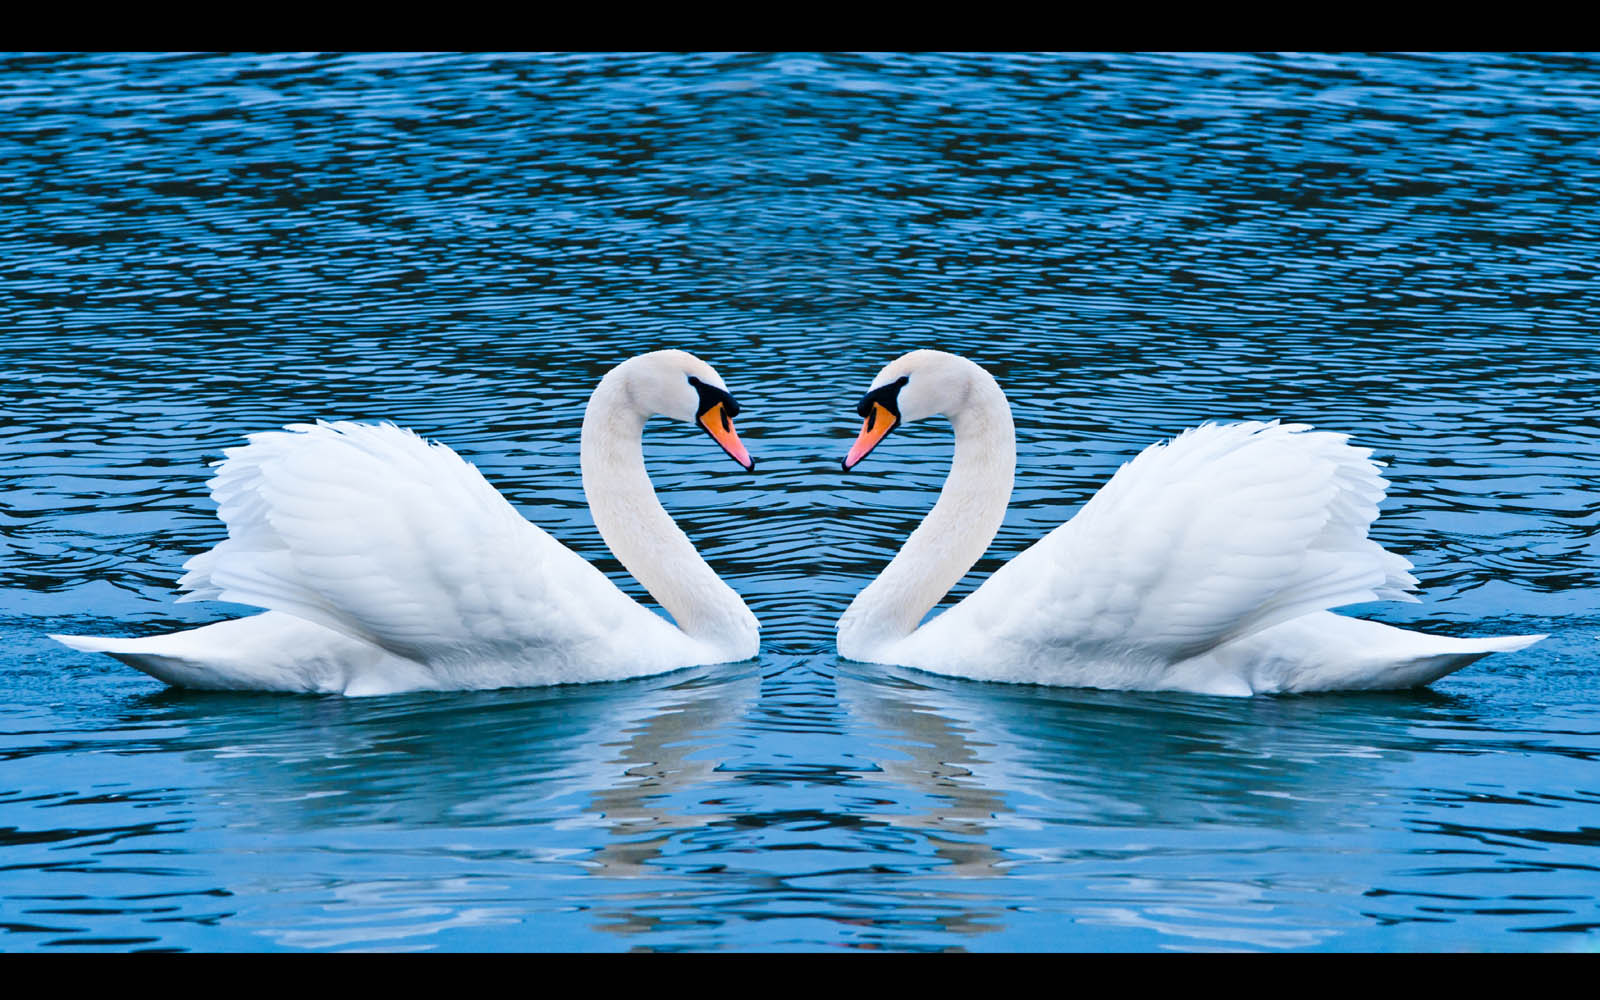 Tag Swan Wallpapers Backgrounds Photos Imagesand Pictures for 1600x1000